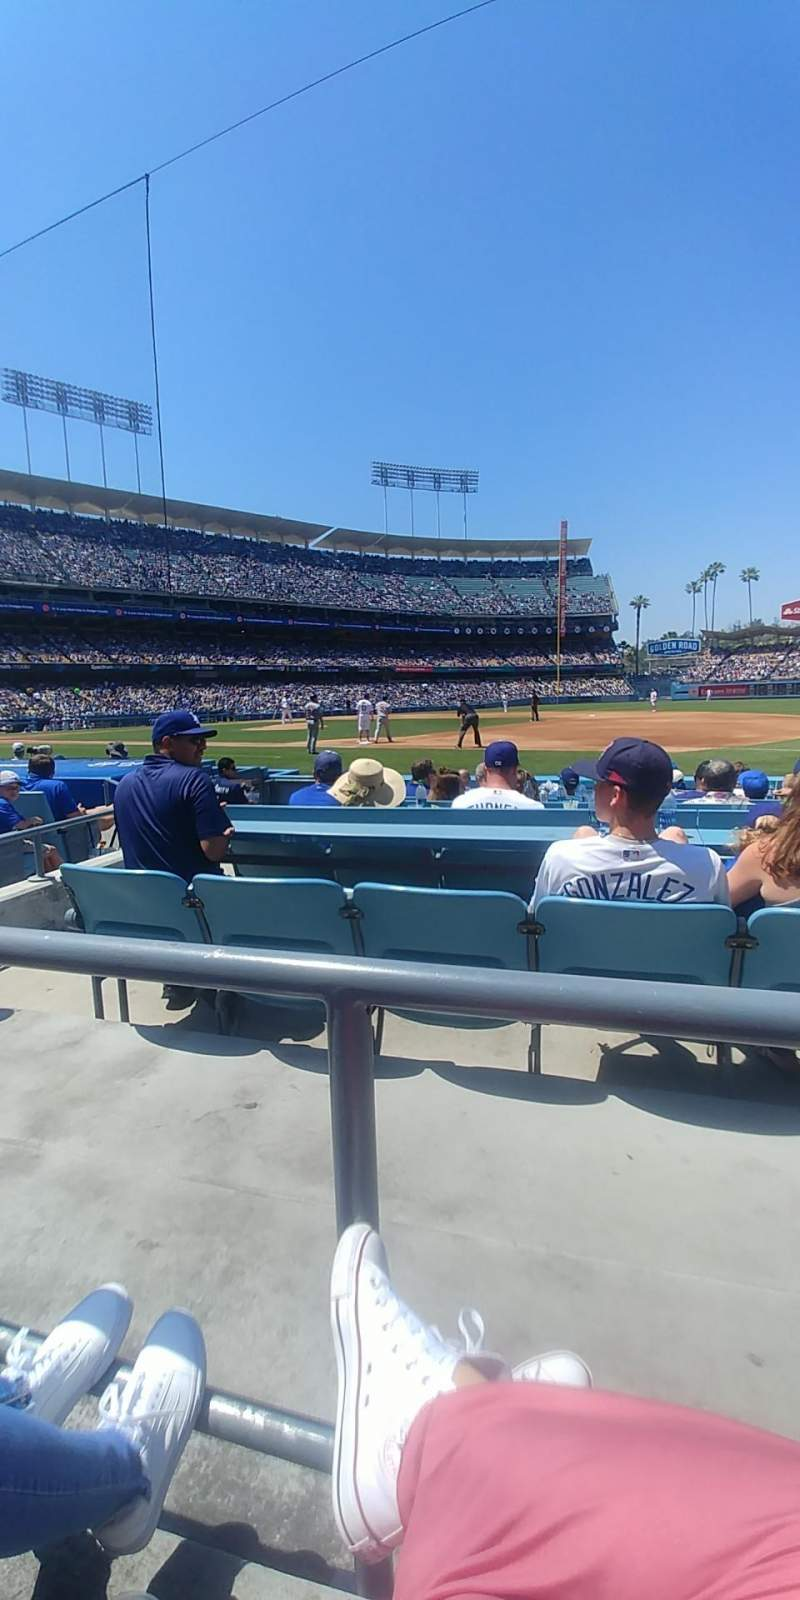 Seating view for Dodger Stadium Section 26FD Row A Seat 7,8